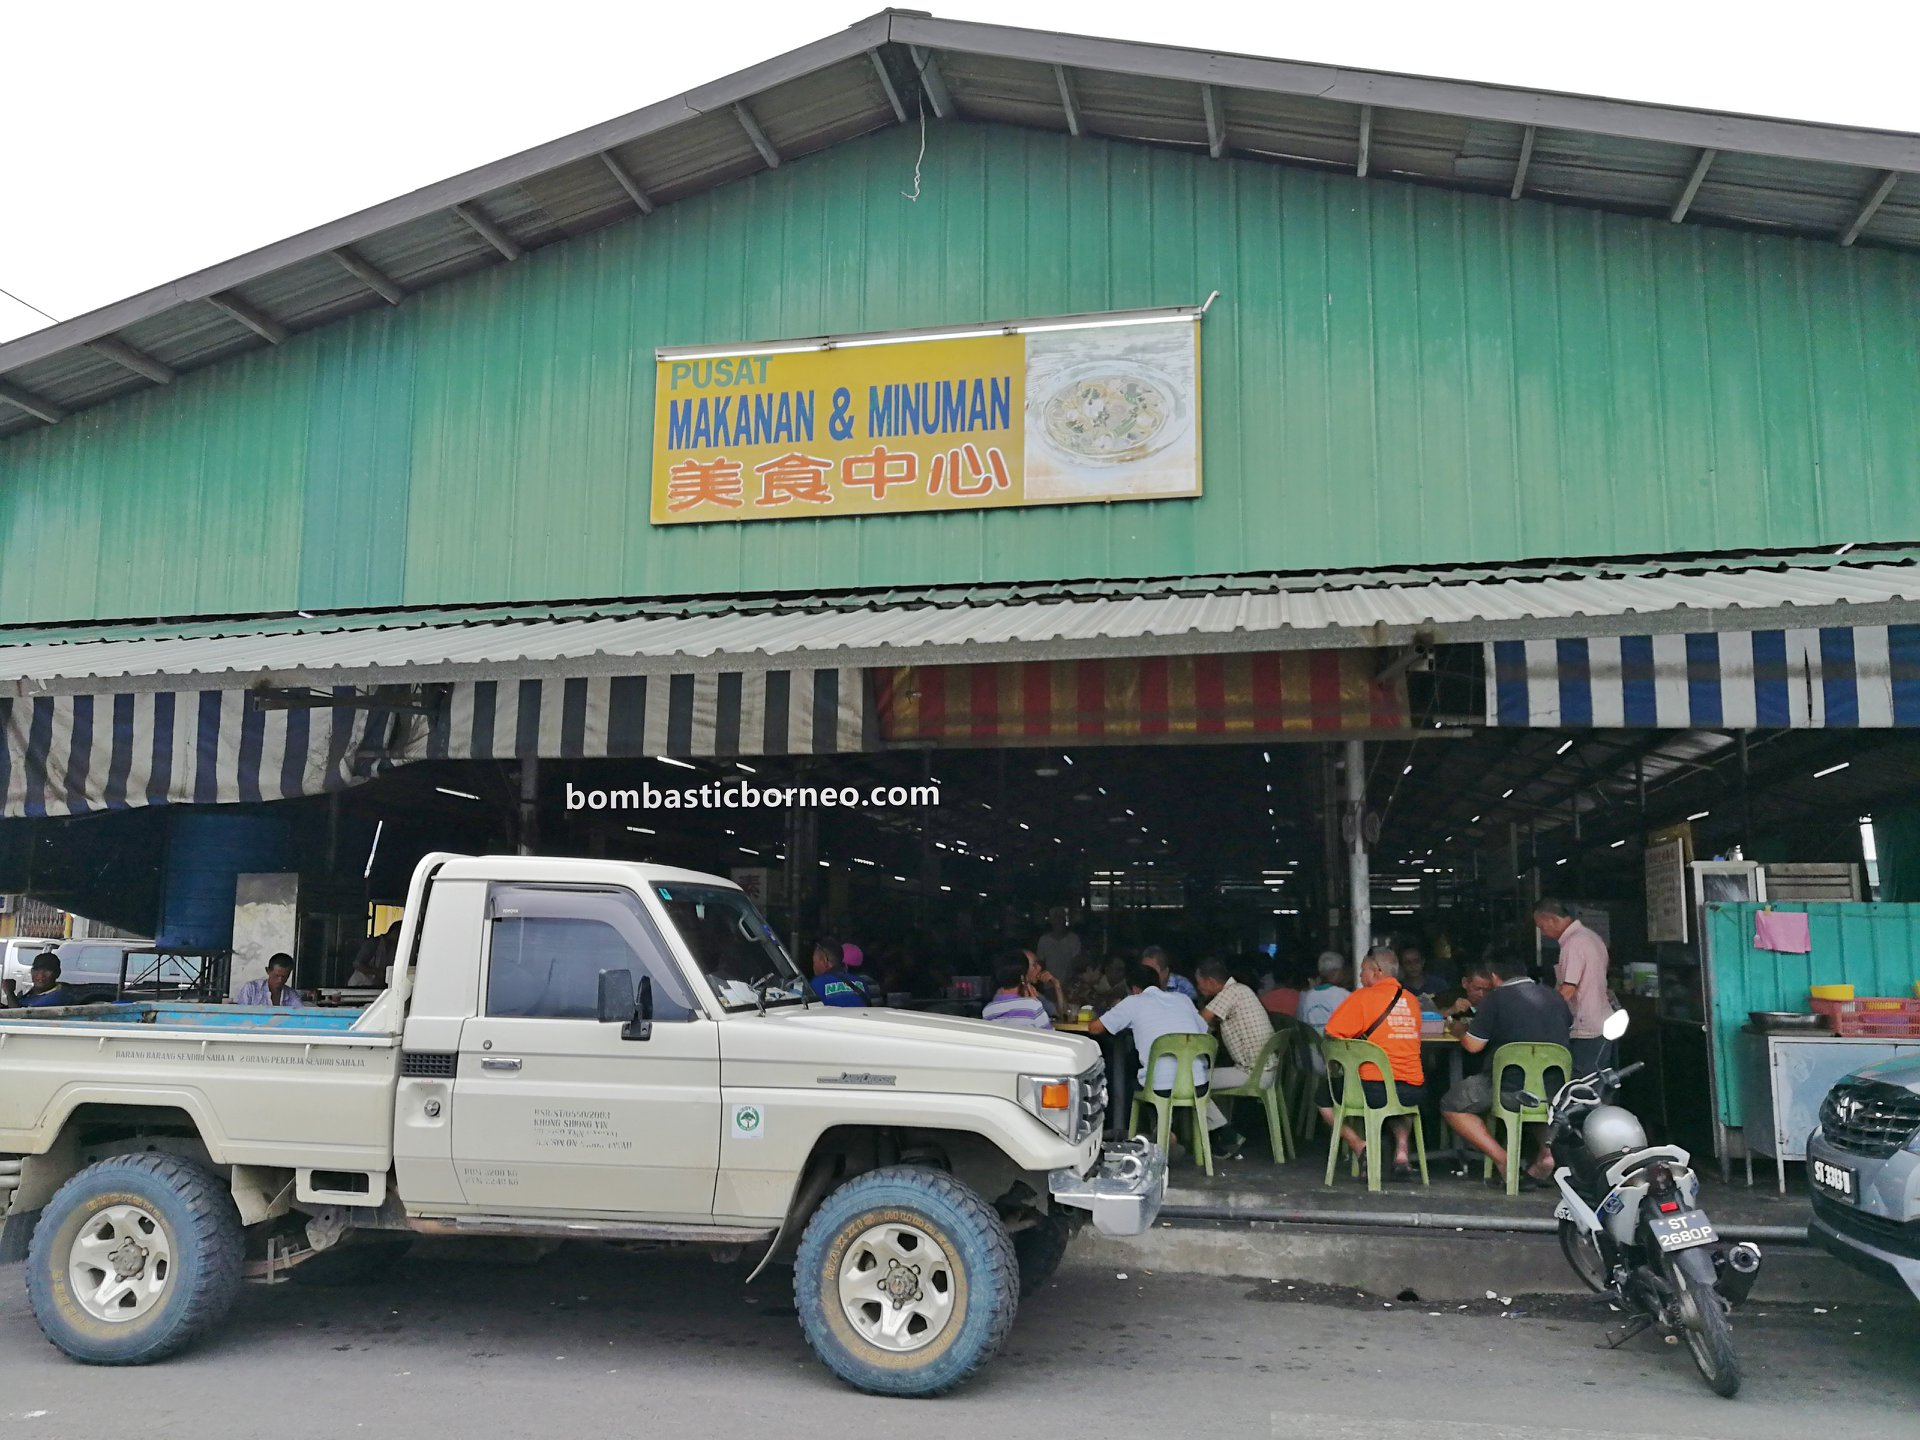 local market, traditional, backpackers, destination, exploration, seafood, makanan laut, Borneo, Malaysia, Tourism, tourist attraction, travel guide, 马来西亚沙巴, 新安综合巴刹, 斗湖美食中心,